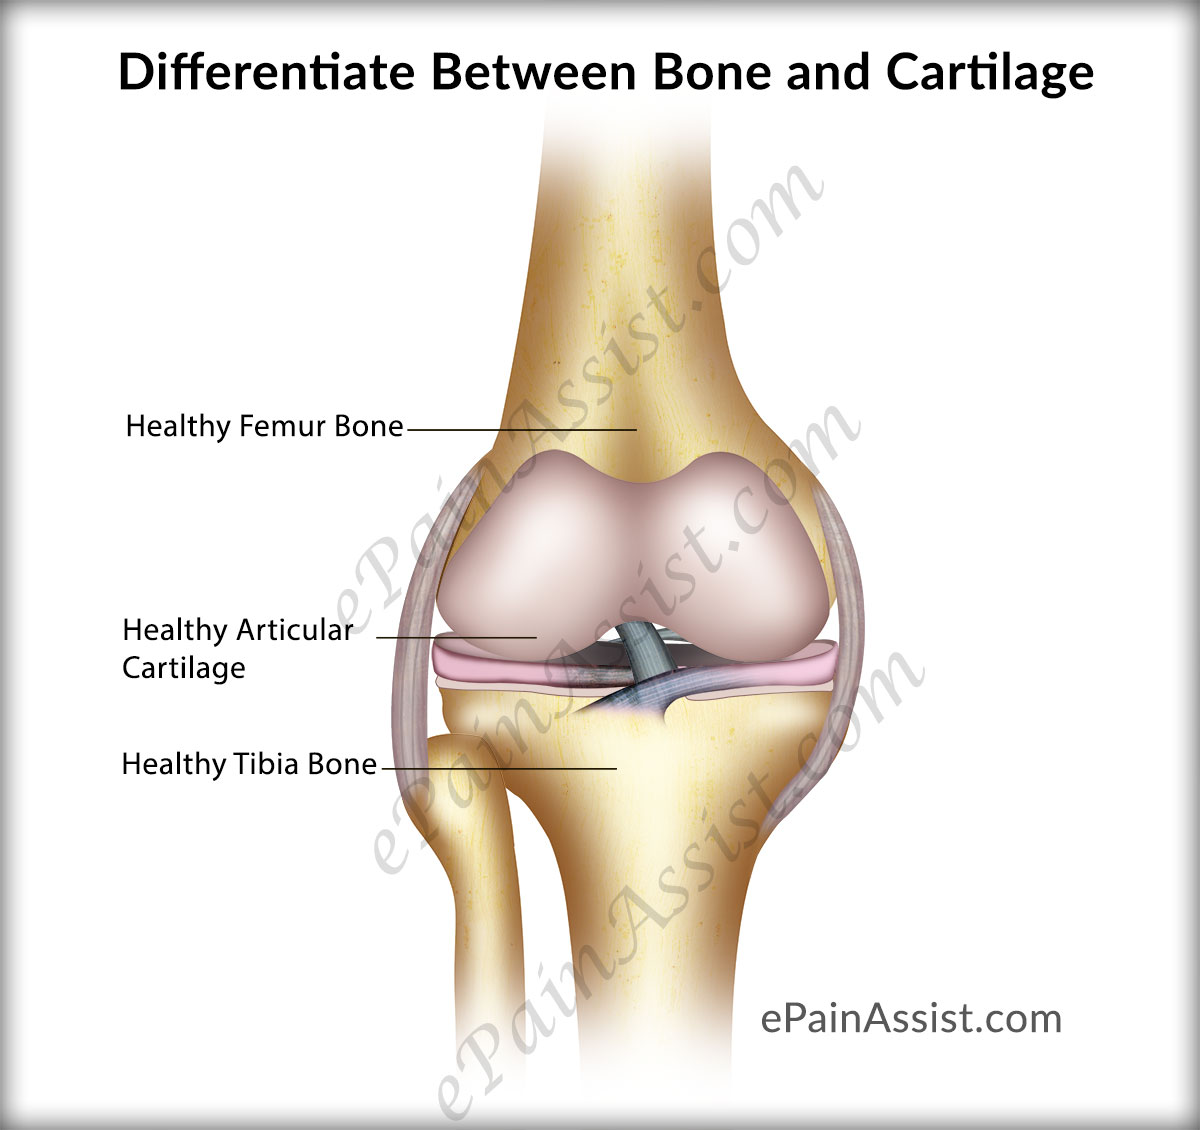 Differentiate Between Bone and Cartilage